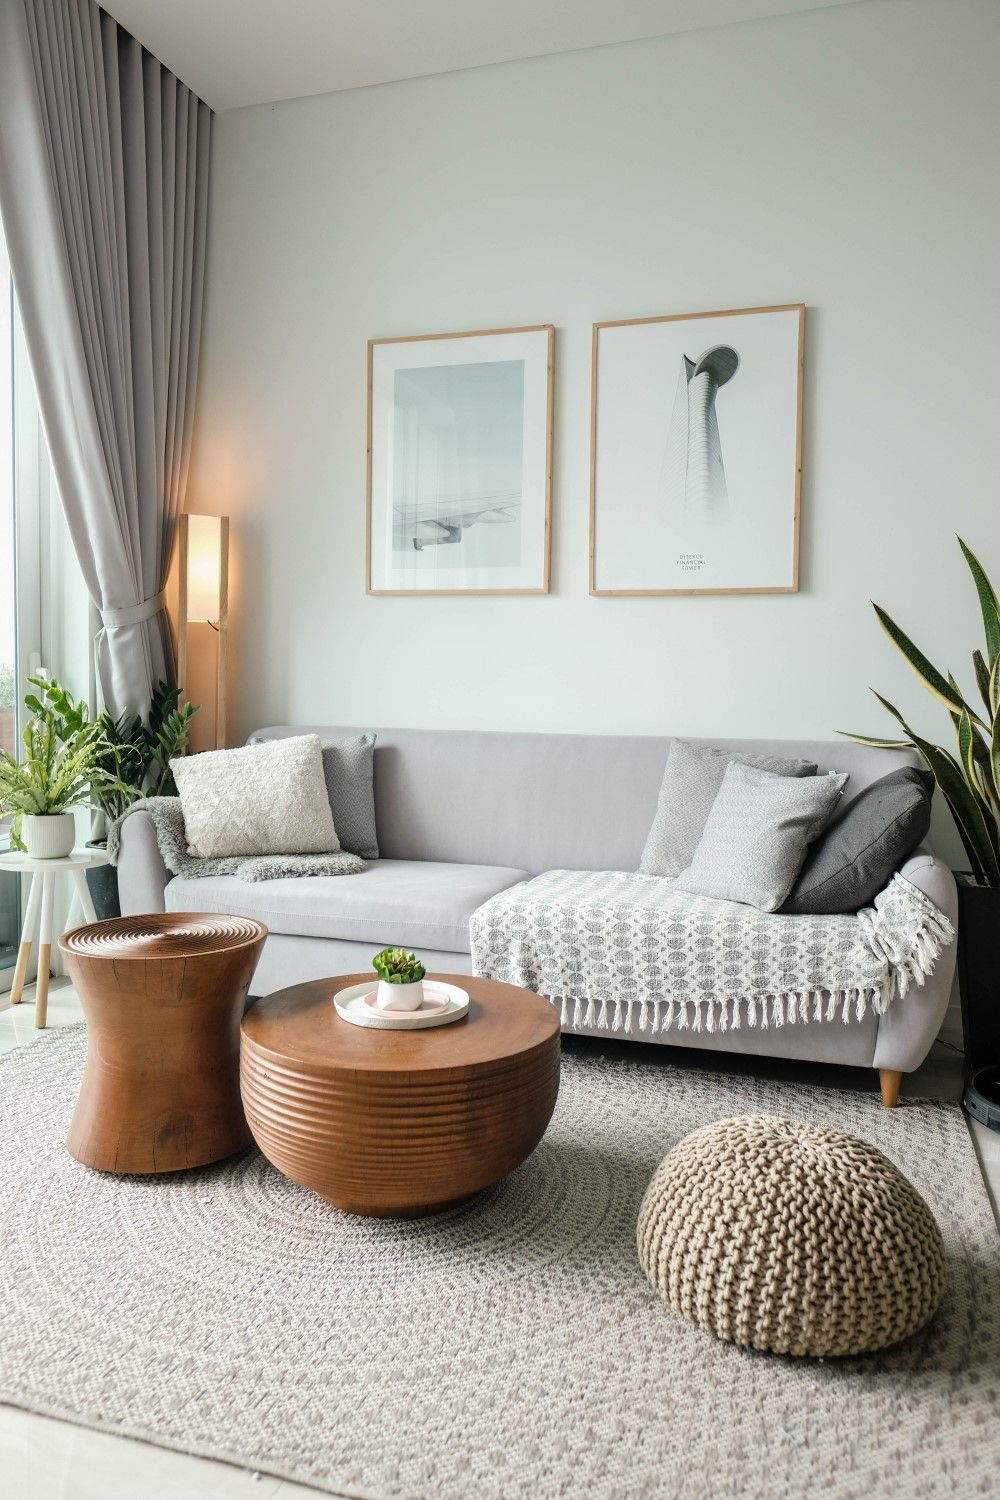 Decorating Ideas for a Cozy Living Room - DIVINE